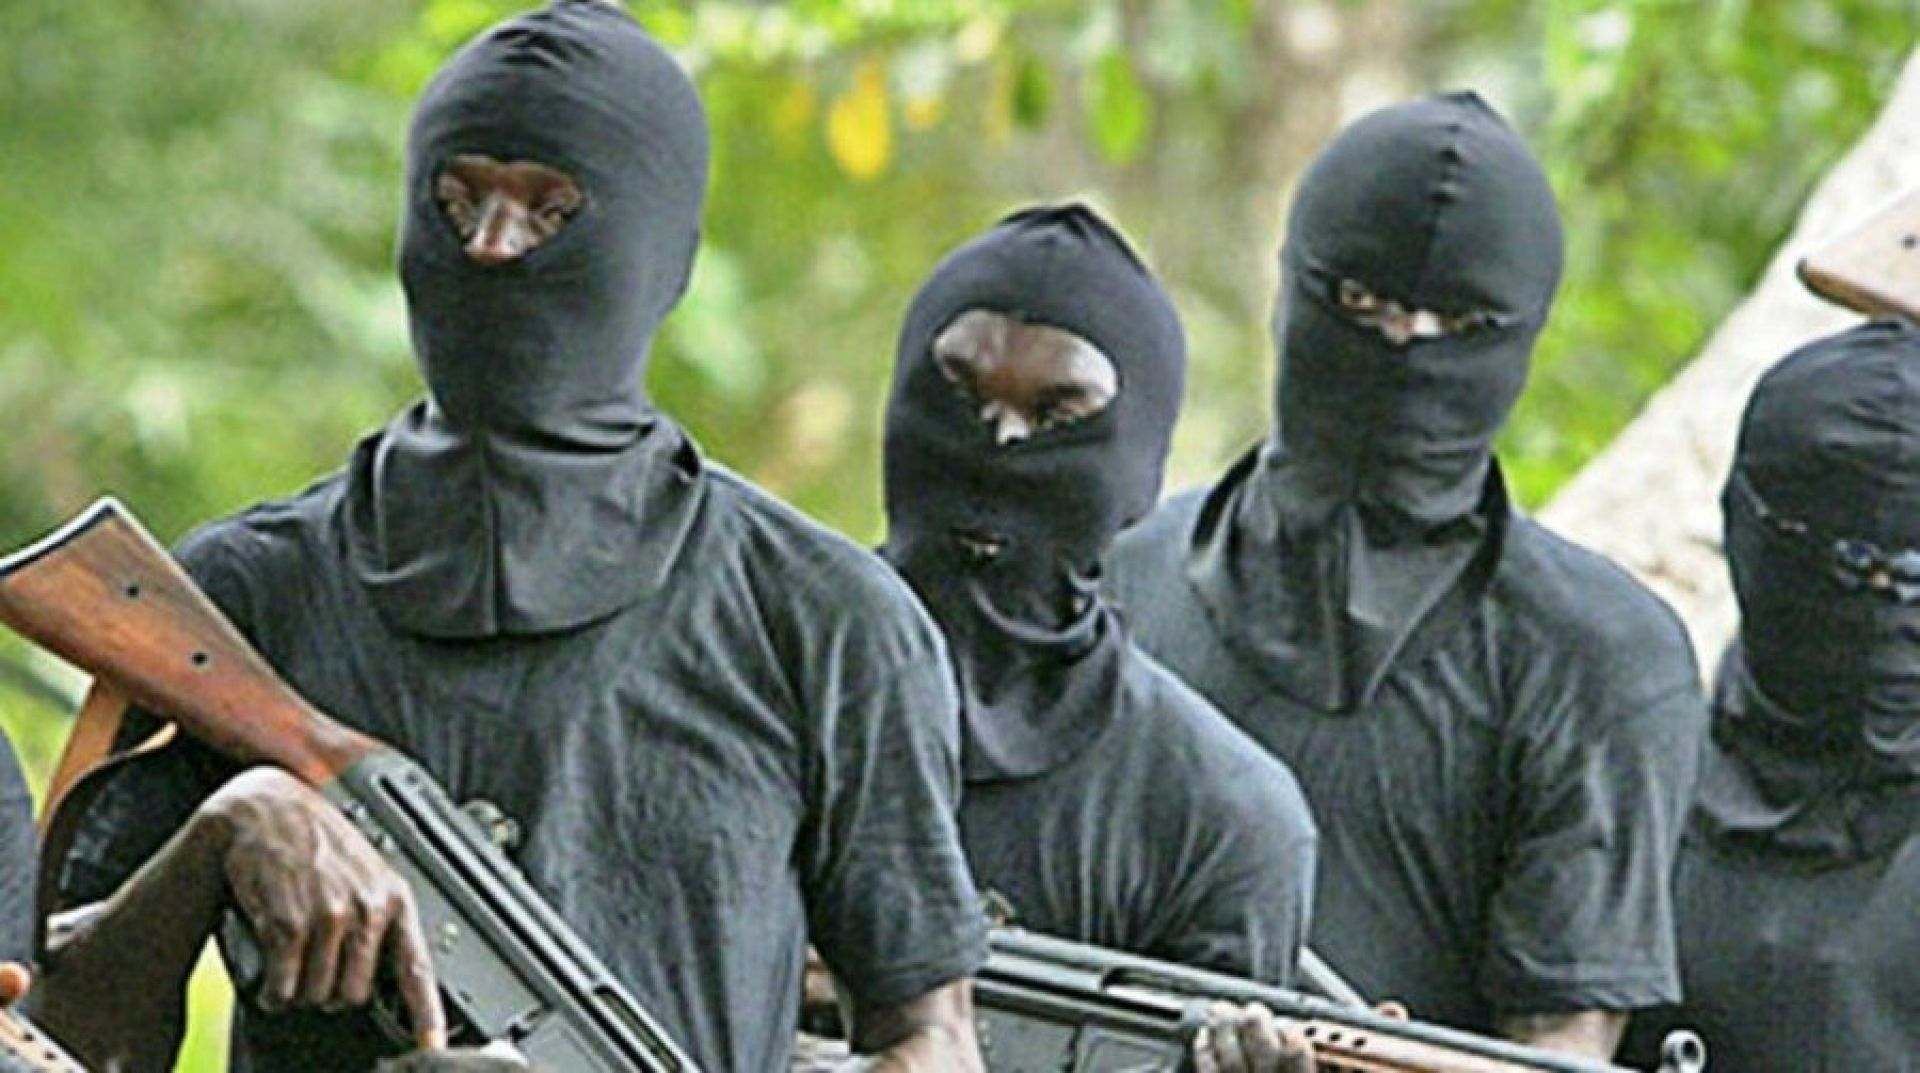 Bandits kill 2 persons, burn houses, vehicles in Kaduna LGA